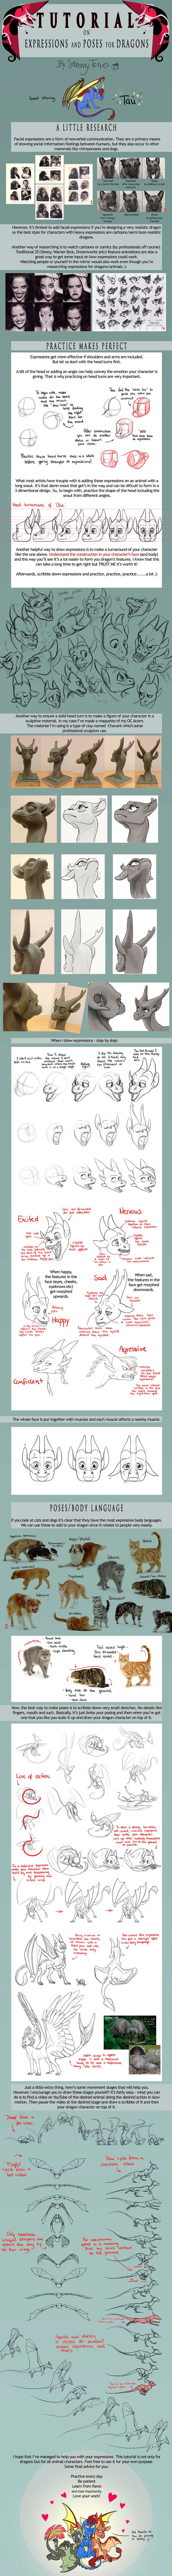 TUTORIAL: Expressions and Poses for Dragons by SammyTorres on DeviantArt